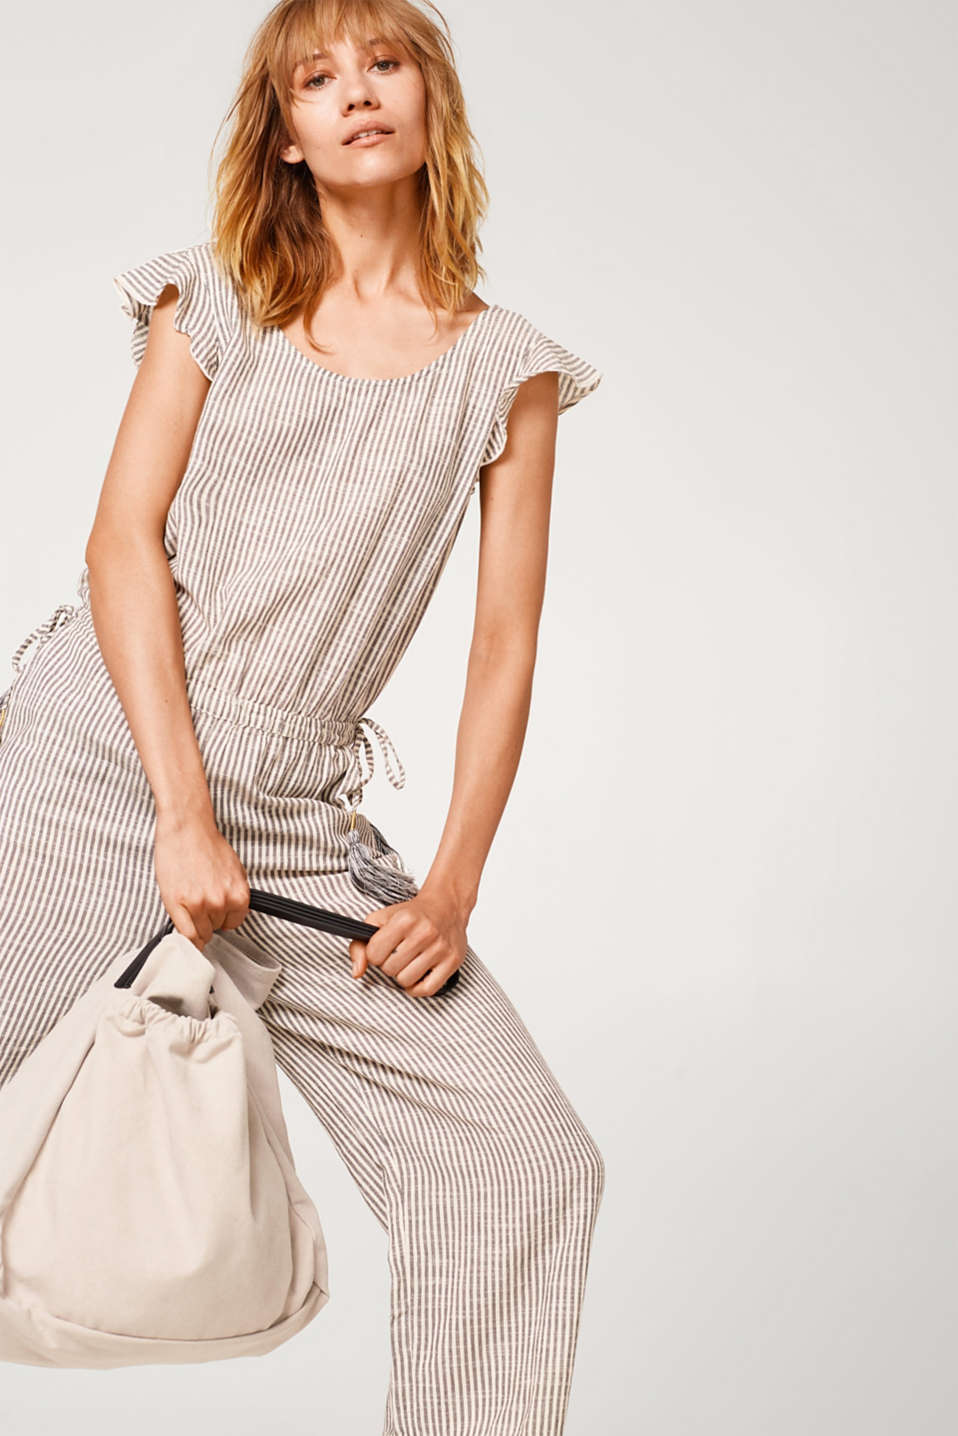 Esprit - Jumpsuit with frills and tassels, 100% cotton